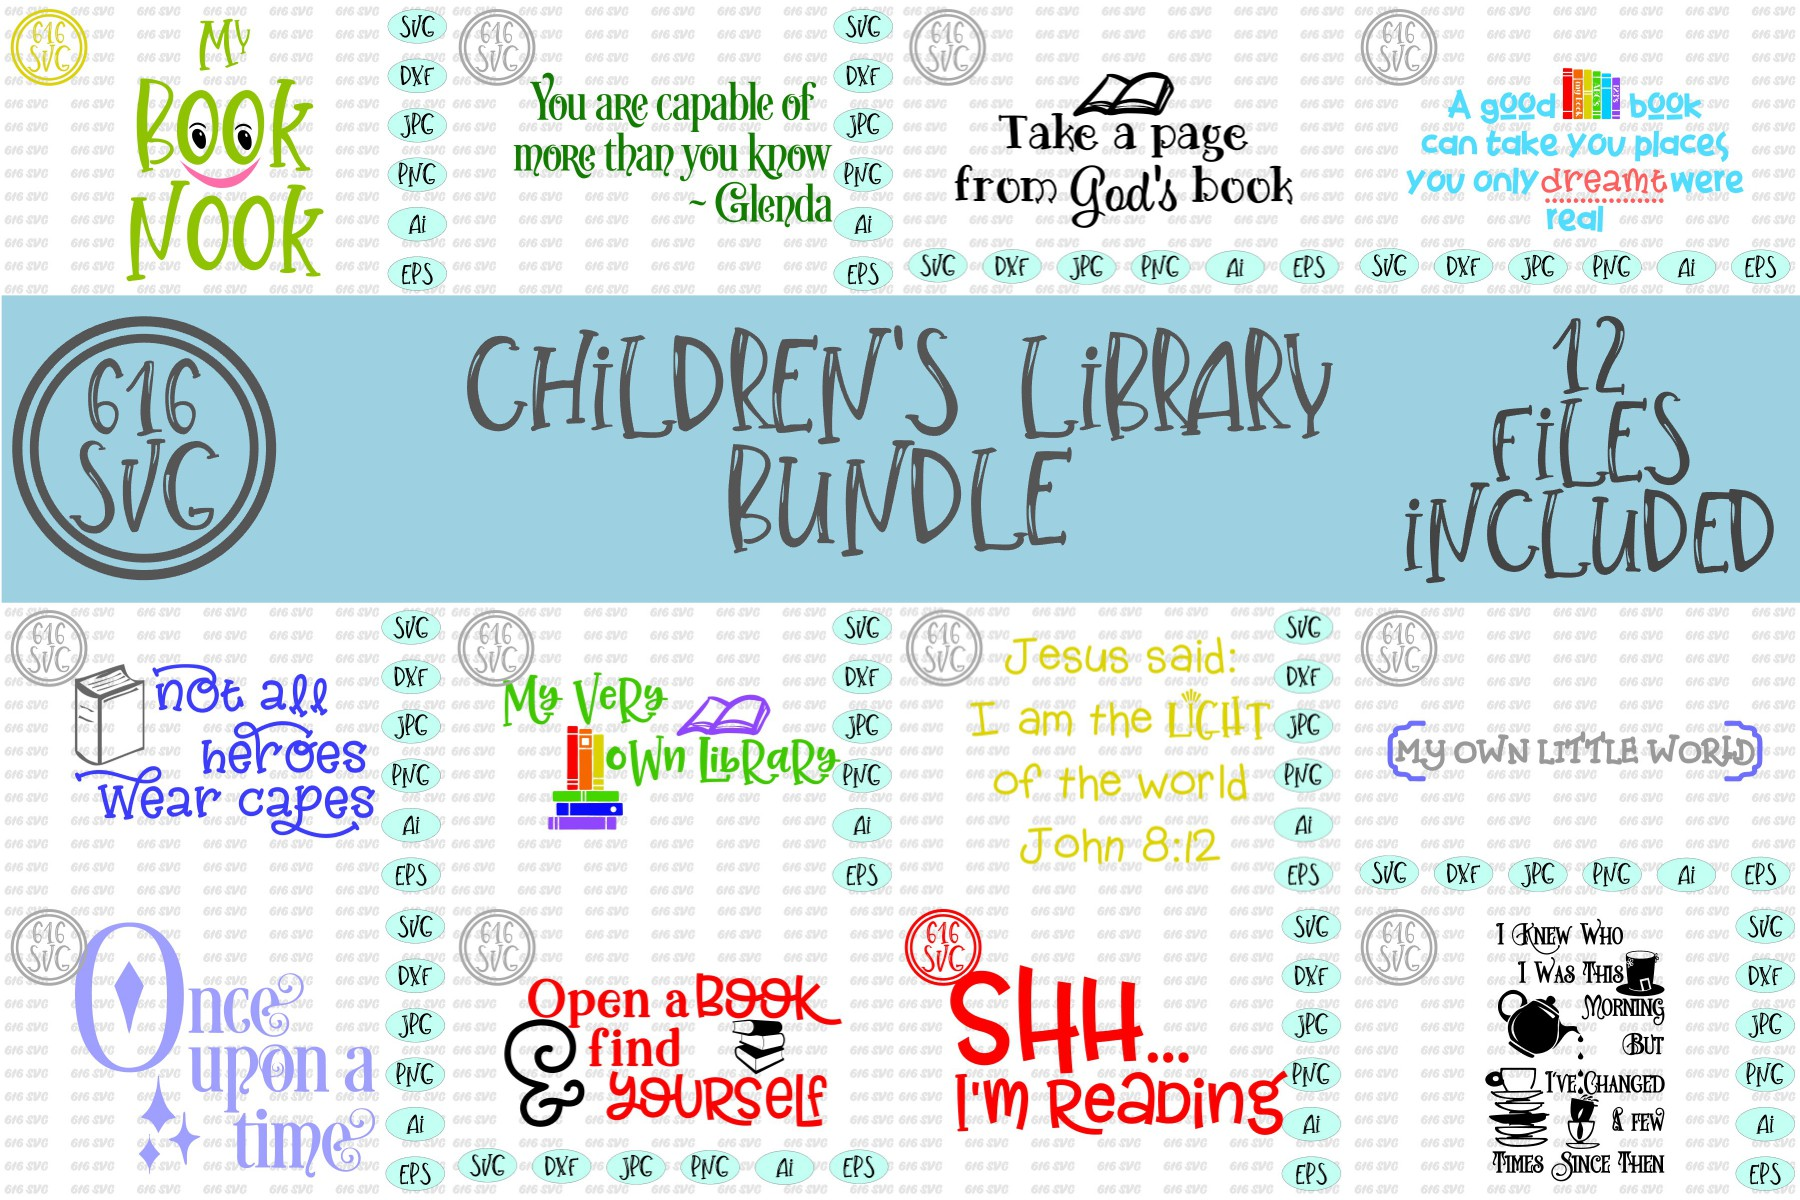 Childrens Library Bundle SVG, DXF, Ai, PNG example image 1